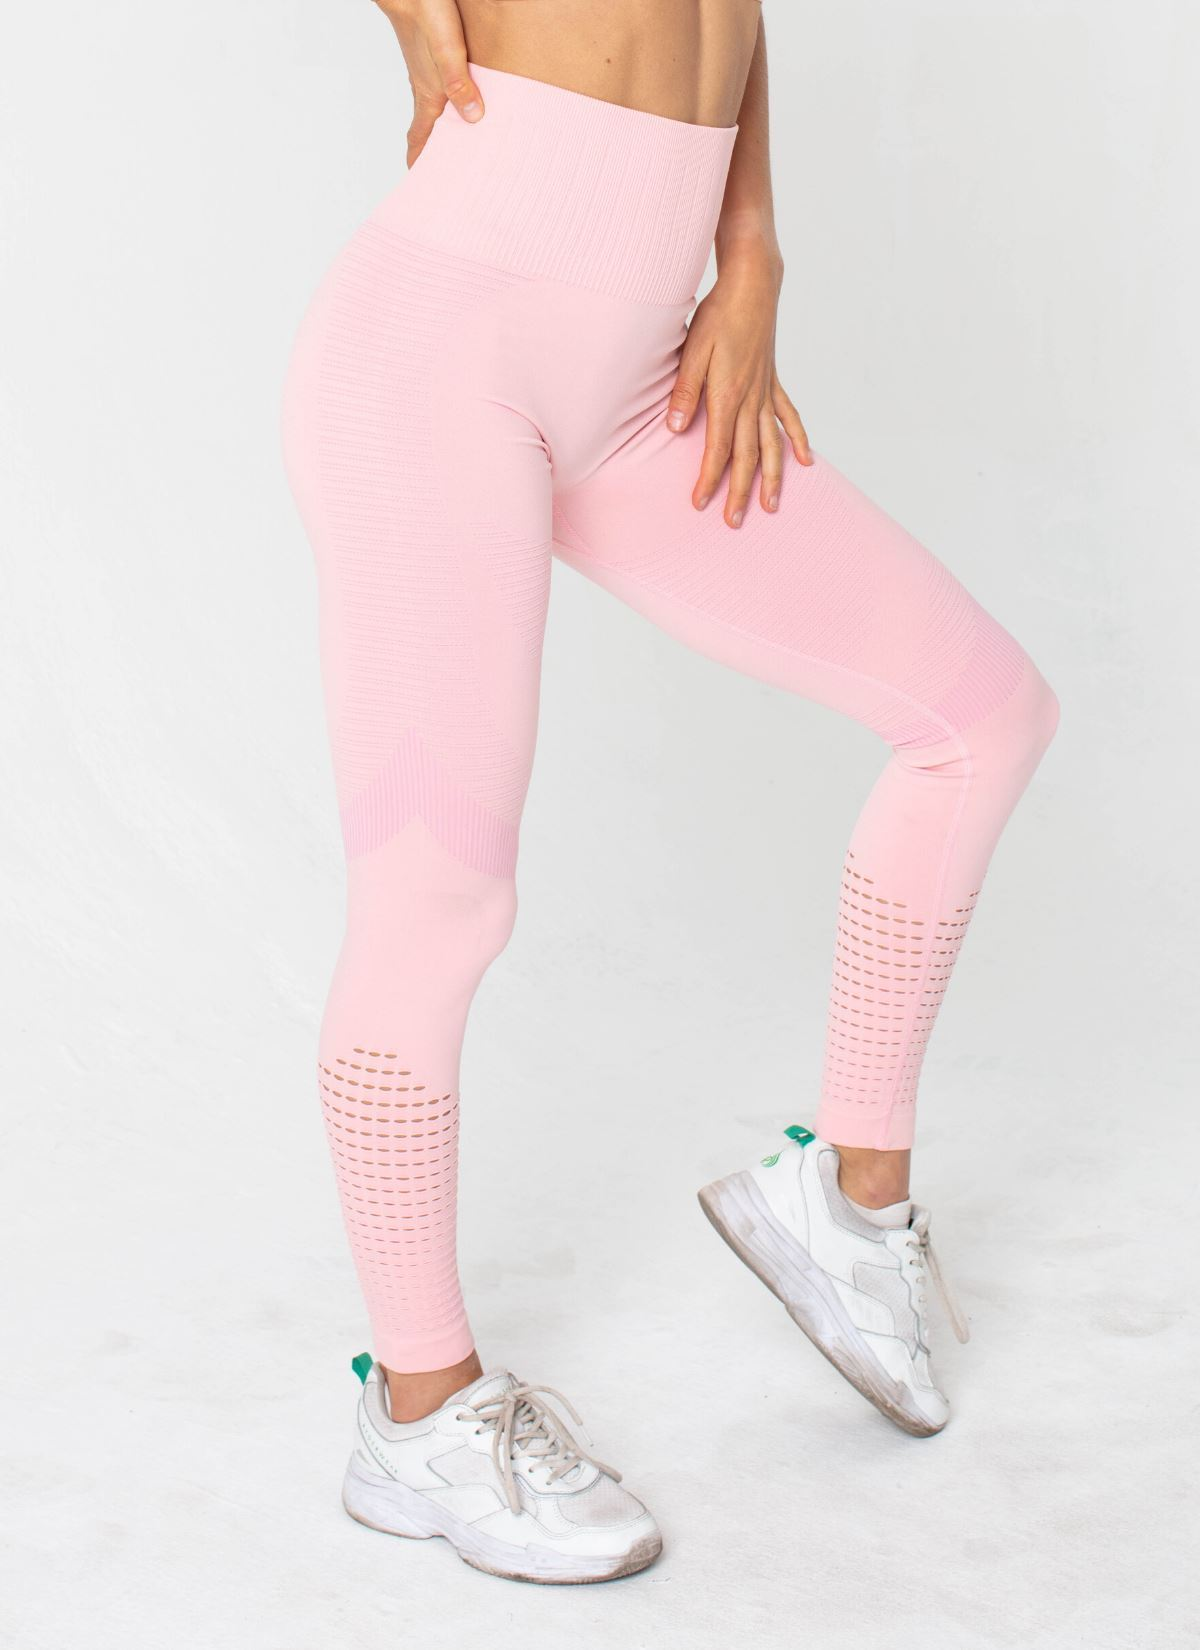 Feel Seamless Pink Leggings - Athlete Body